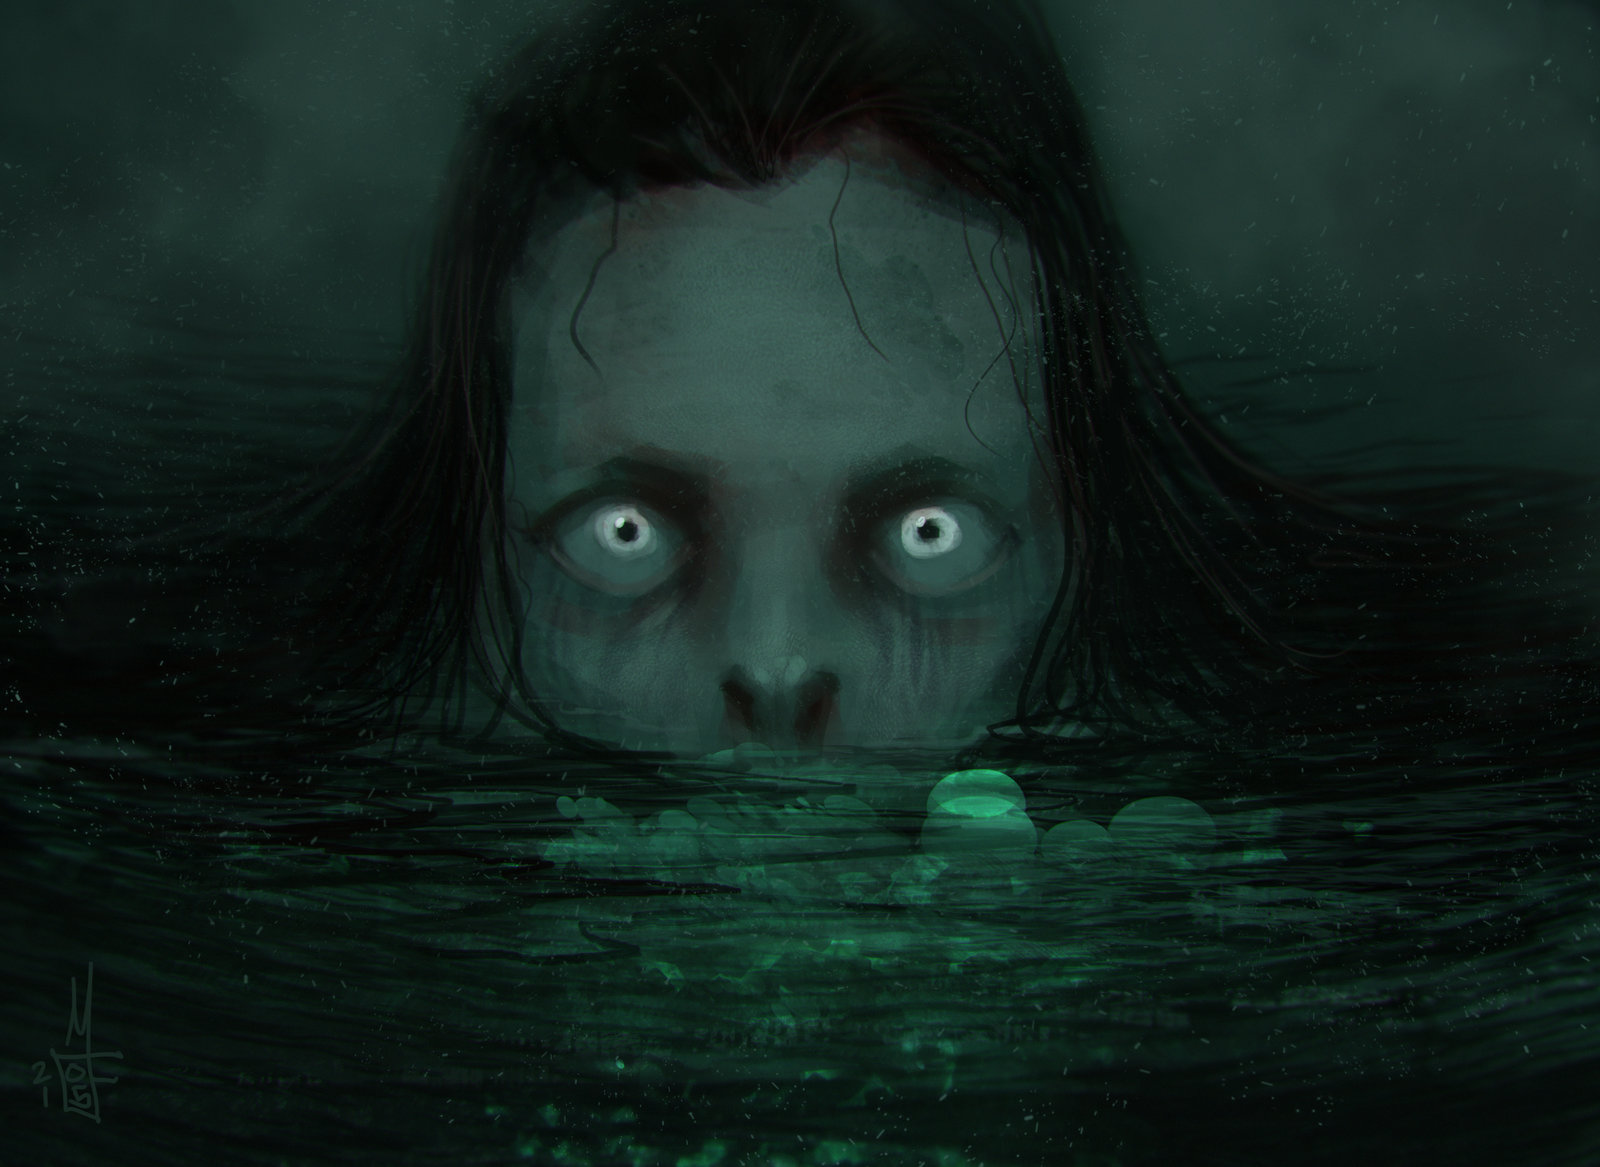 Daily Spitpainting: Lady in the Lake